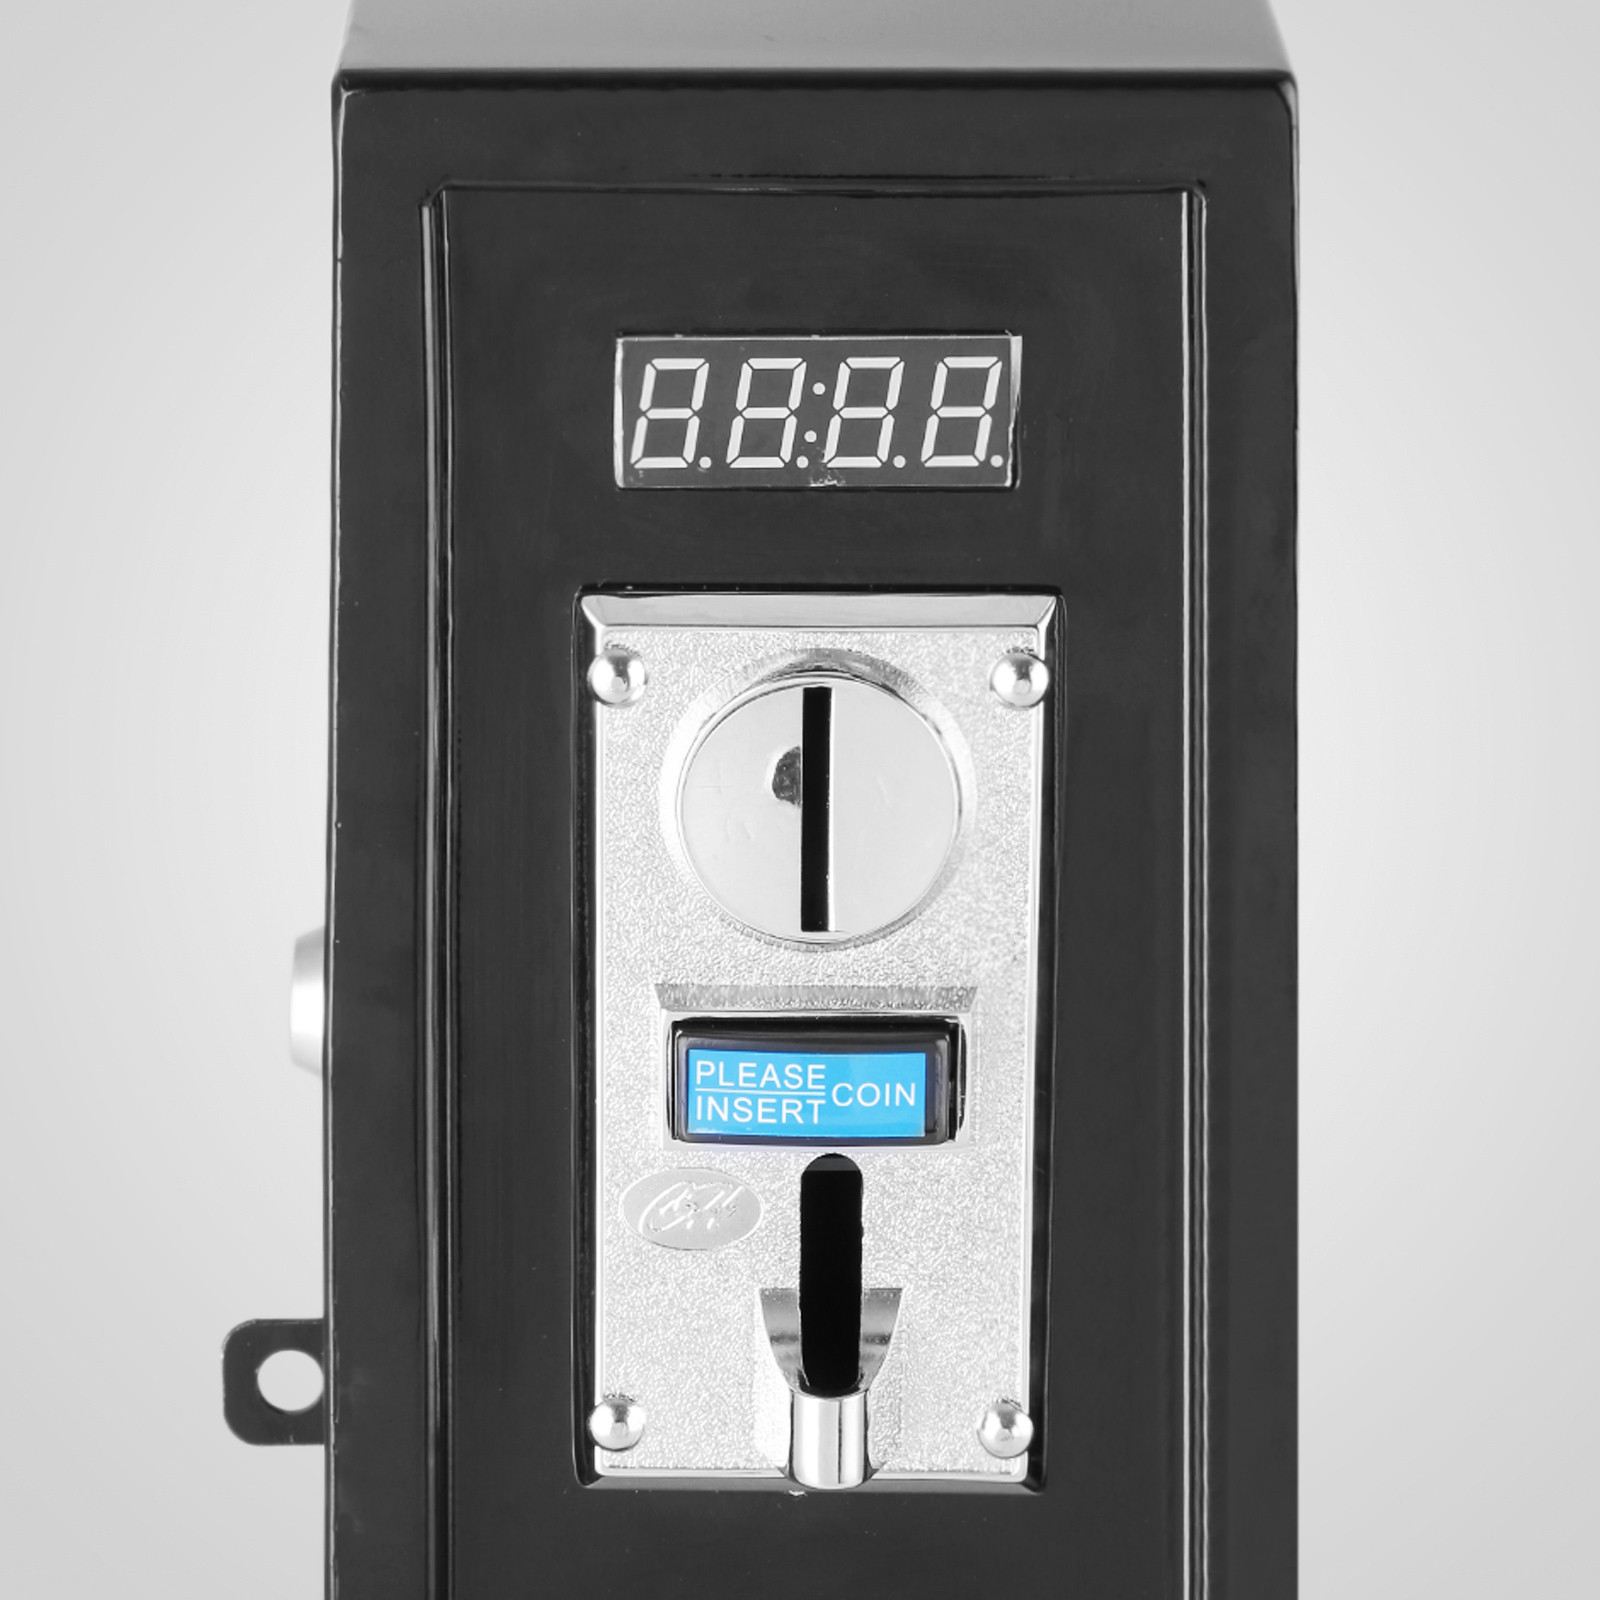 Electricity Coin Meter : Digital coin operated timer v electricity